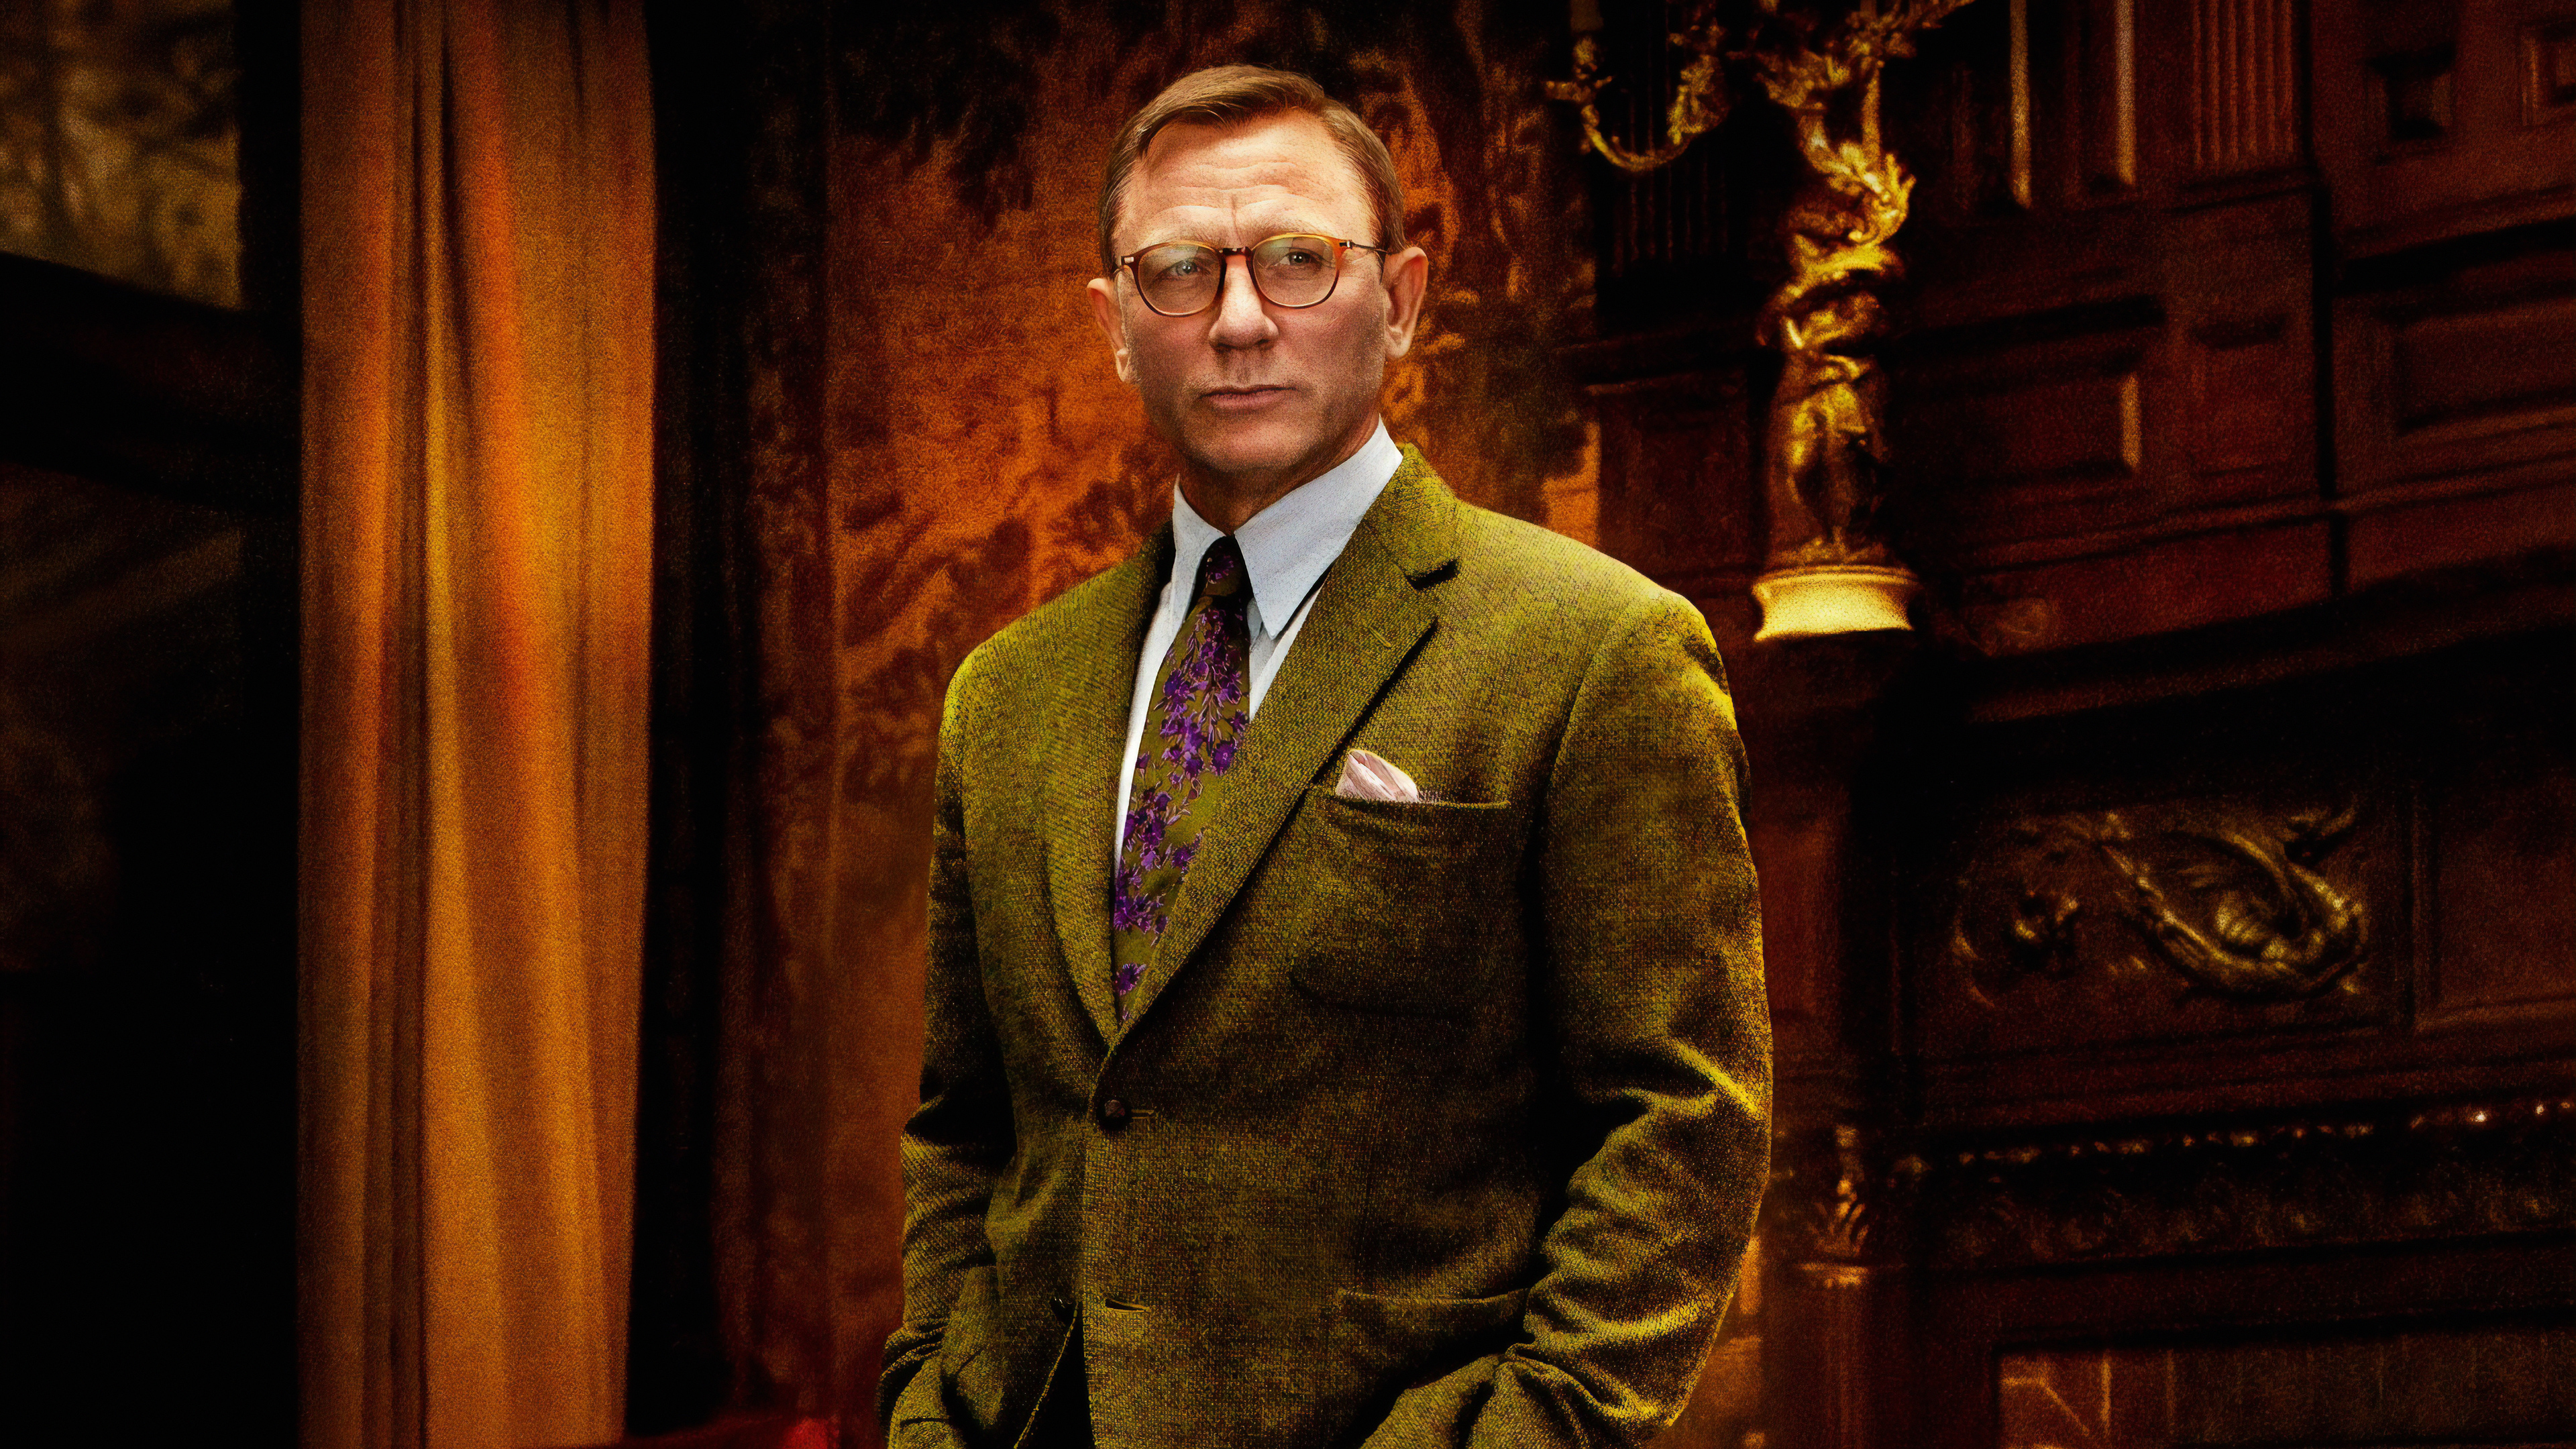 Daniel Craig In Knives Out 2019 Hd Movies 4k Wallpapers Images Backgrounds Photos And Pictures